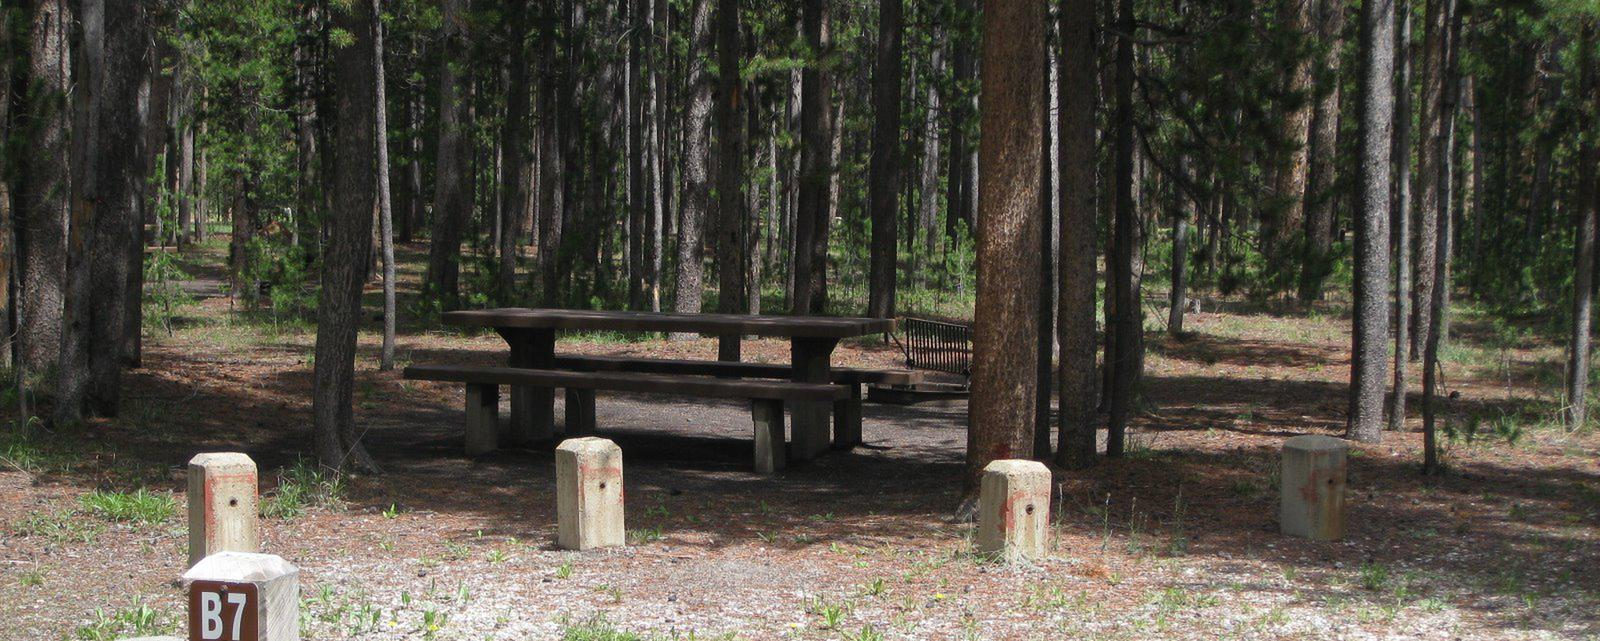 Site B7, surrounded by pine trees, picnic table & fire ringSite B7